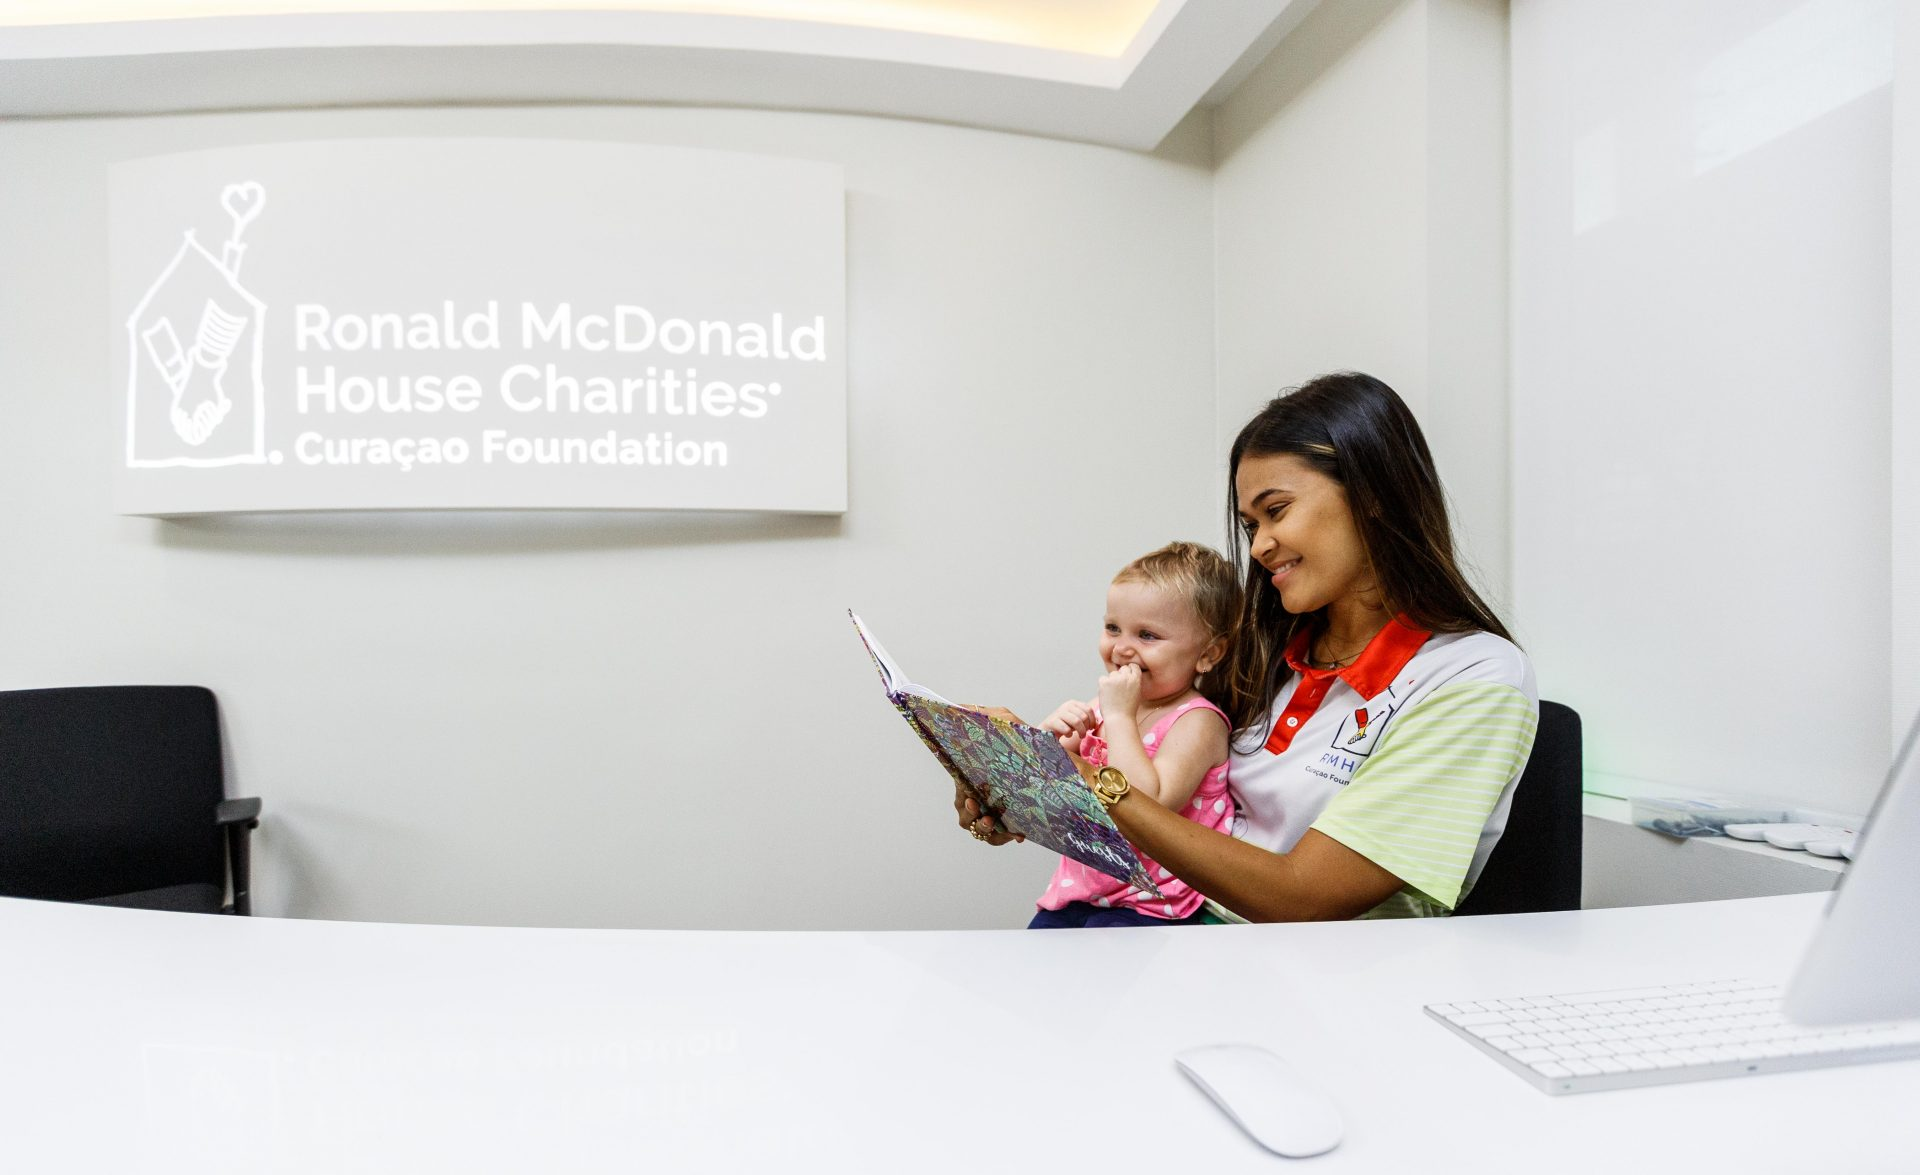 Female volunteer reading a book with a child patient